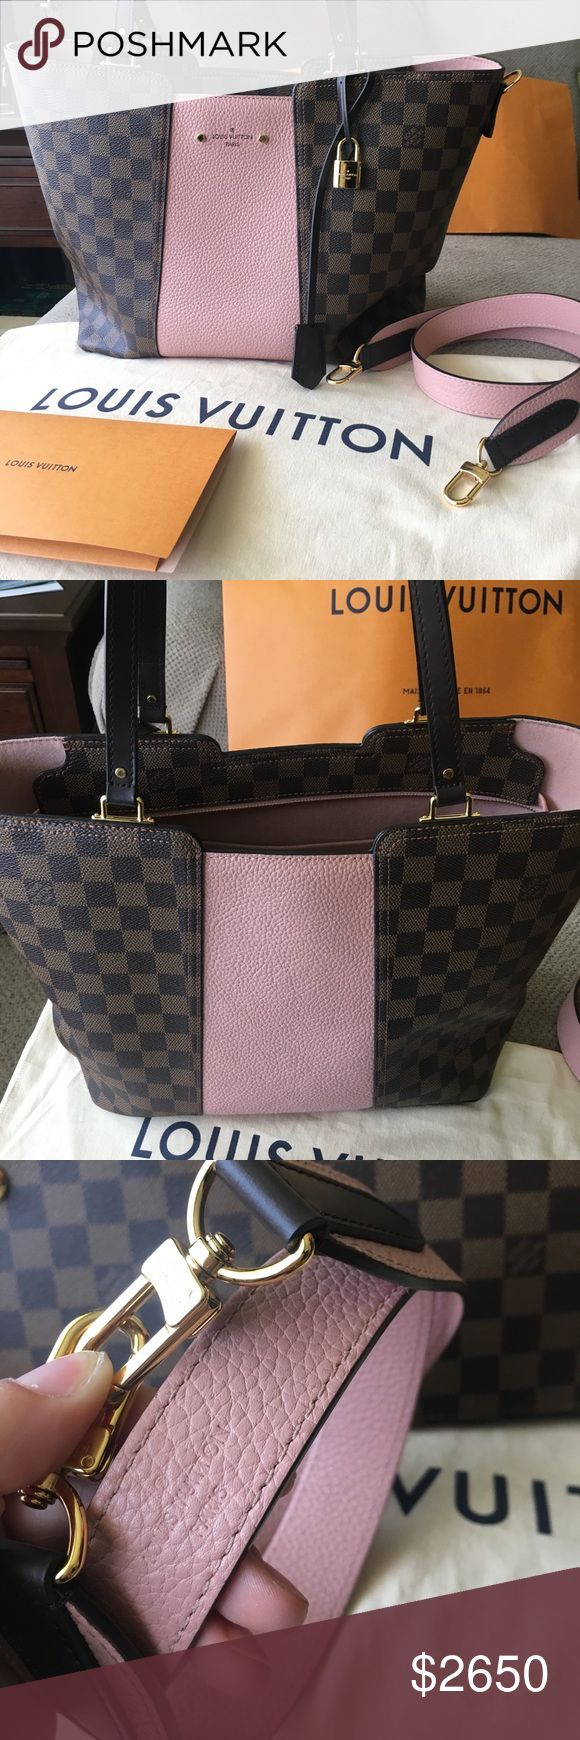 Louis Vuitton Jersey Tote in Magnolia Like New authentic Louis Vuitton Jersey in Magnolia and Damier Ebene pattern. Bag is from May 2017 date code SD1147. Comes with strap, store bag, and receipt with my info blacked out. I also have been using a pink Felt bag liner to protect the interior suede. This can be included as well if you are interested. I have a matching LV Pallas wallet in my closet if interested! Louis Vuitton Bags Totes